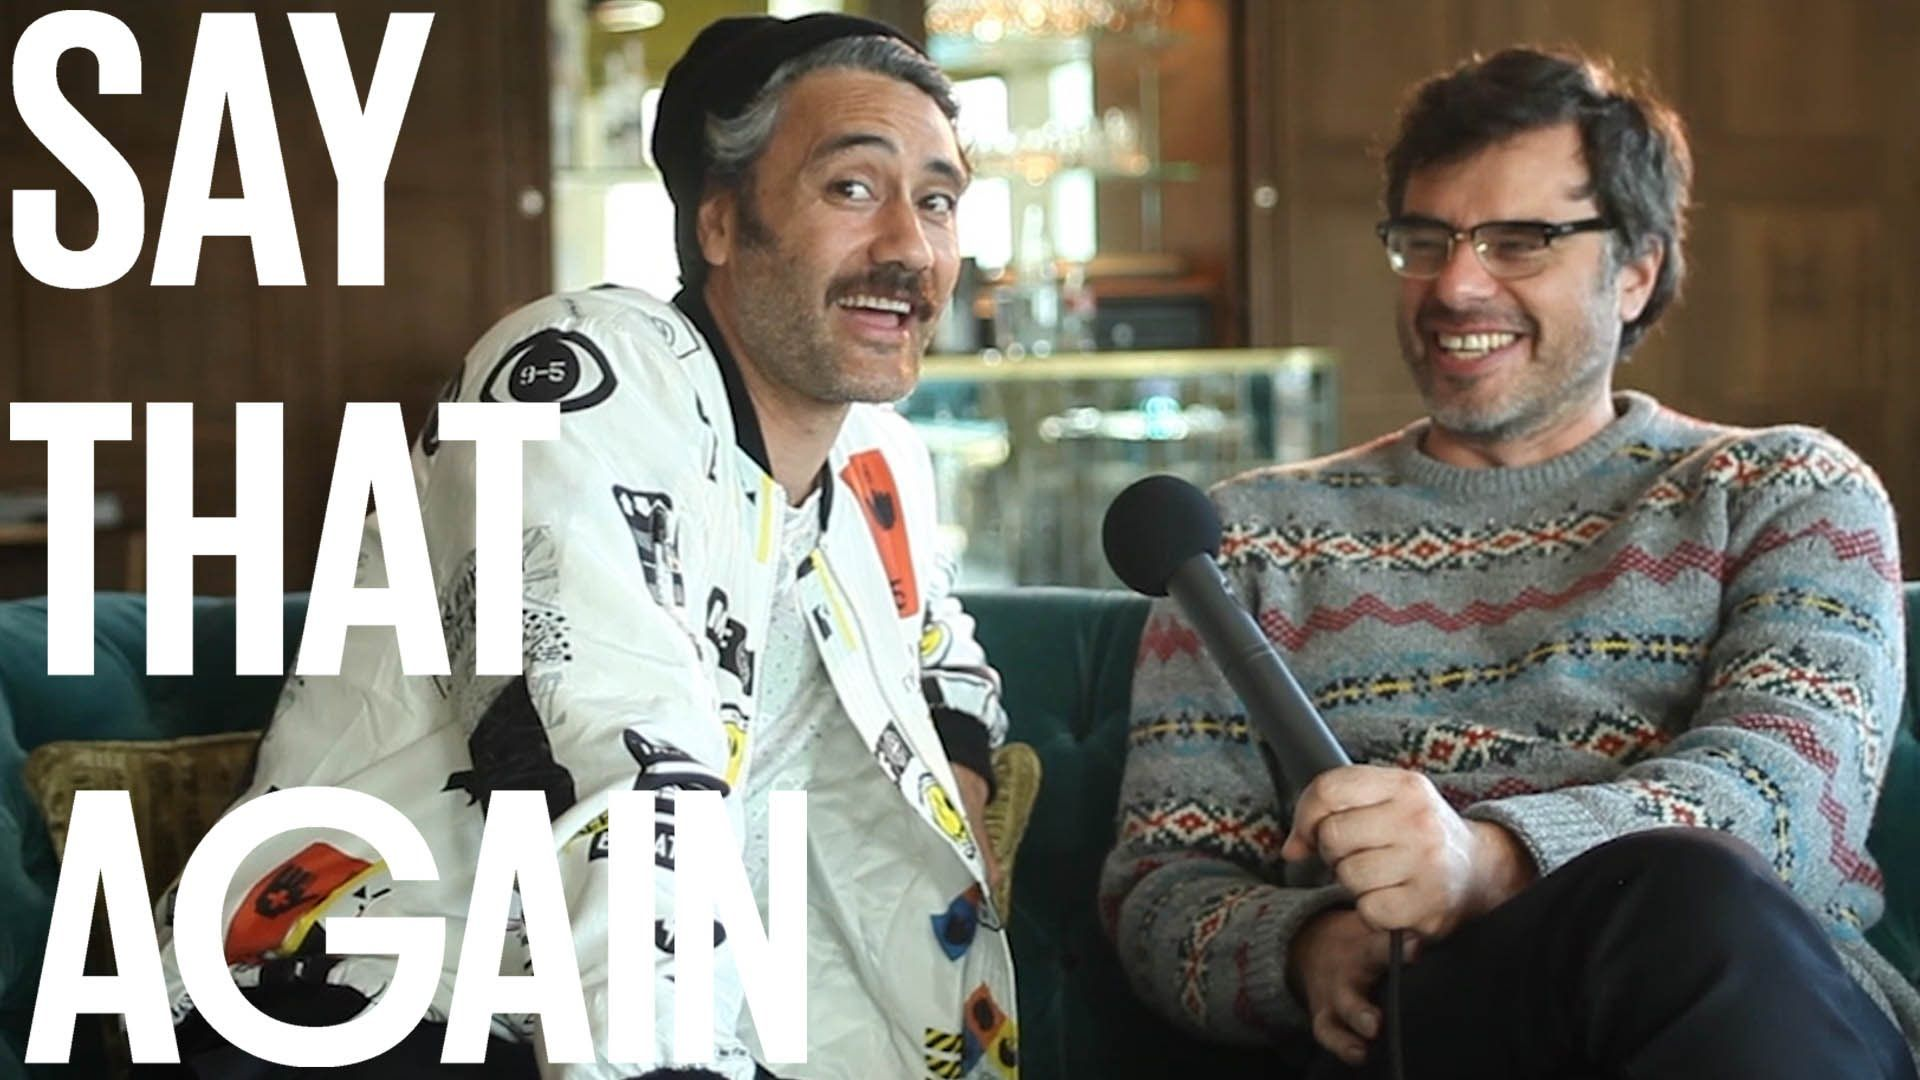 I find this video charming and adorable. Jemaine and Taika just seem to be having so much fun. Say That Again?! - Jemaine Clement & Taika Waititi